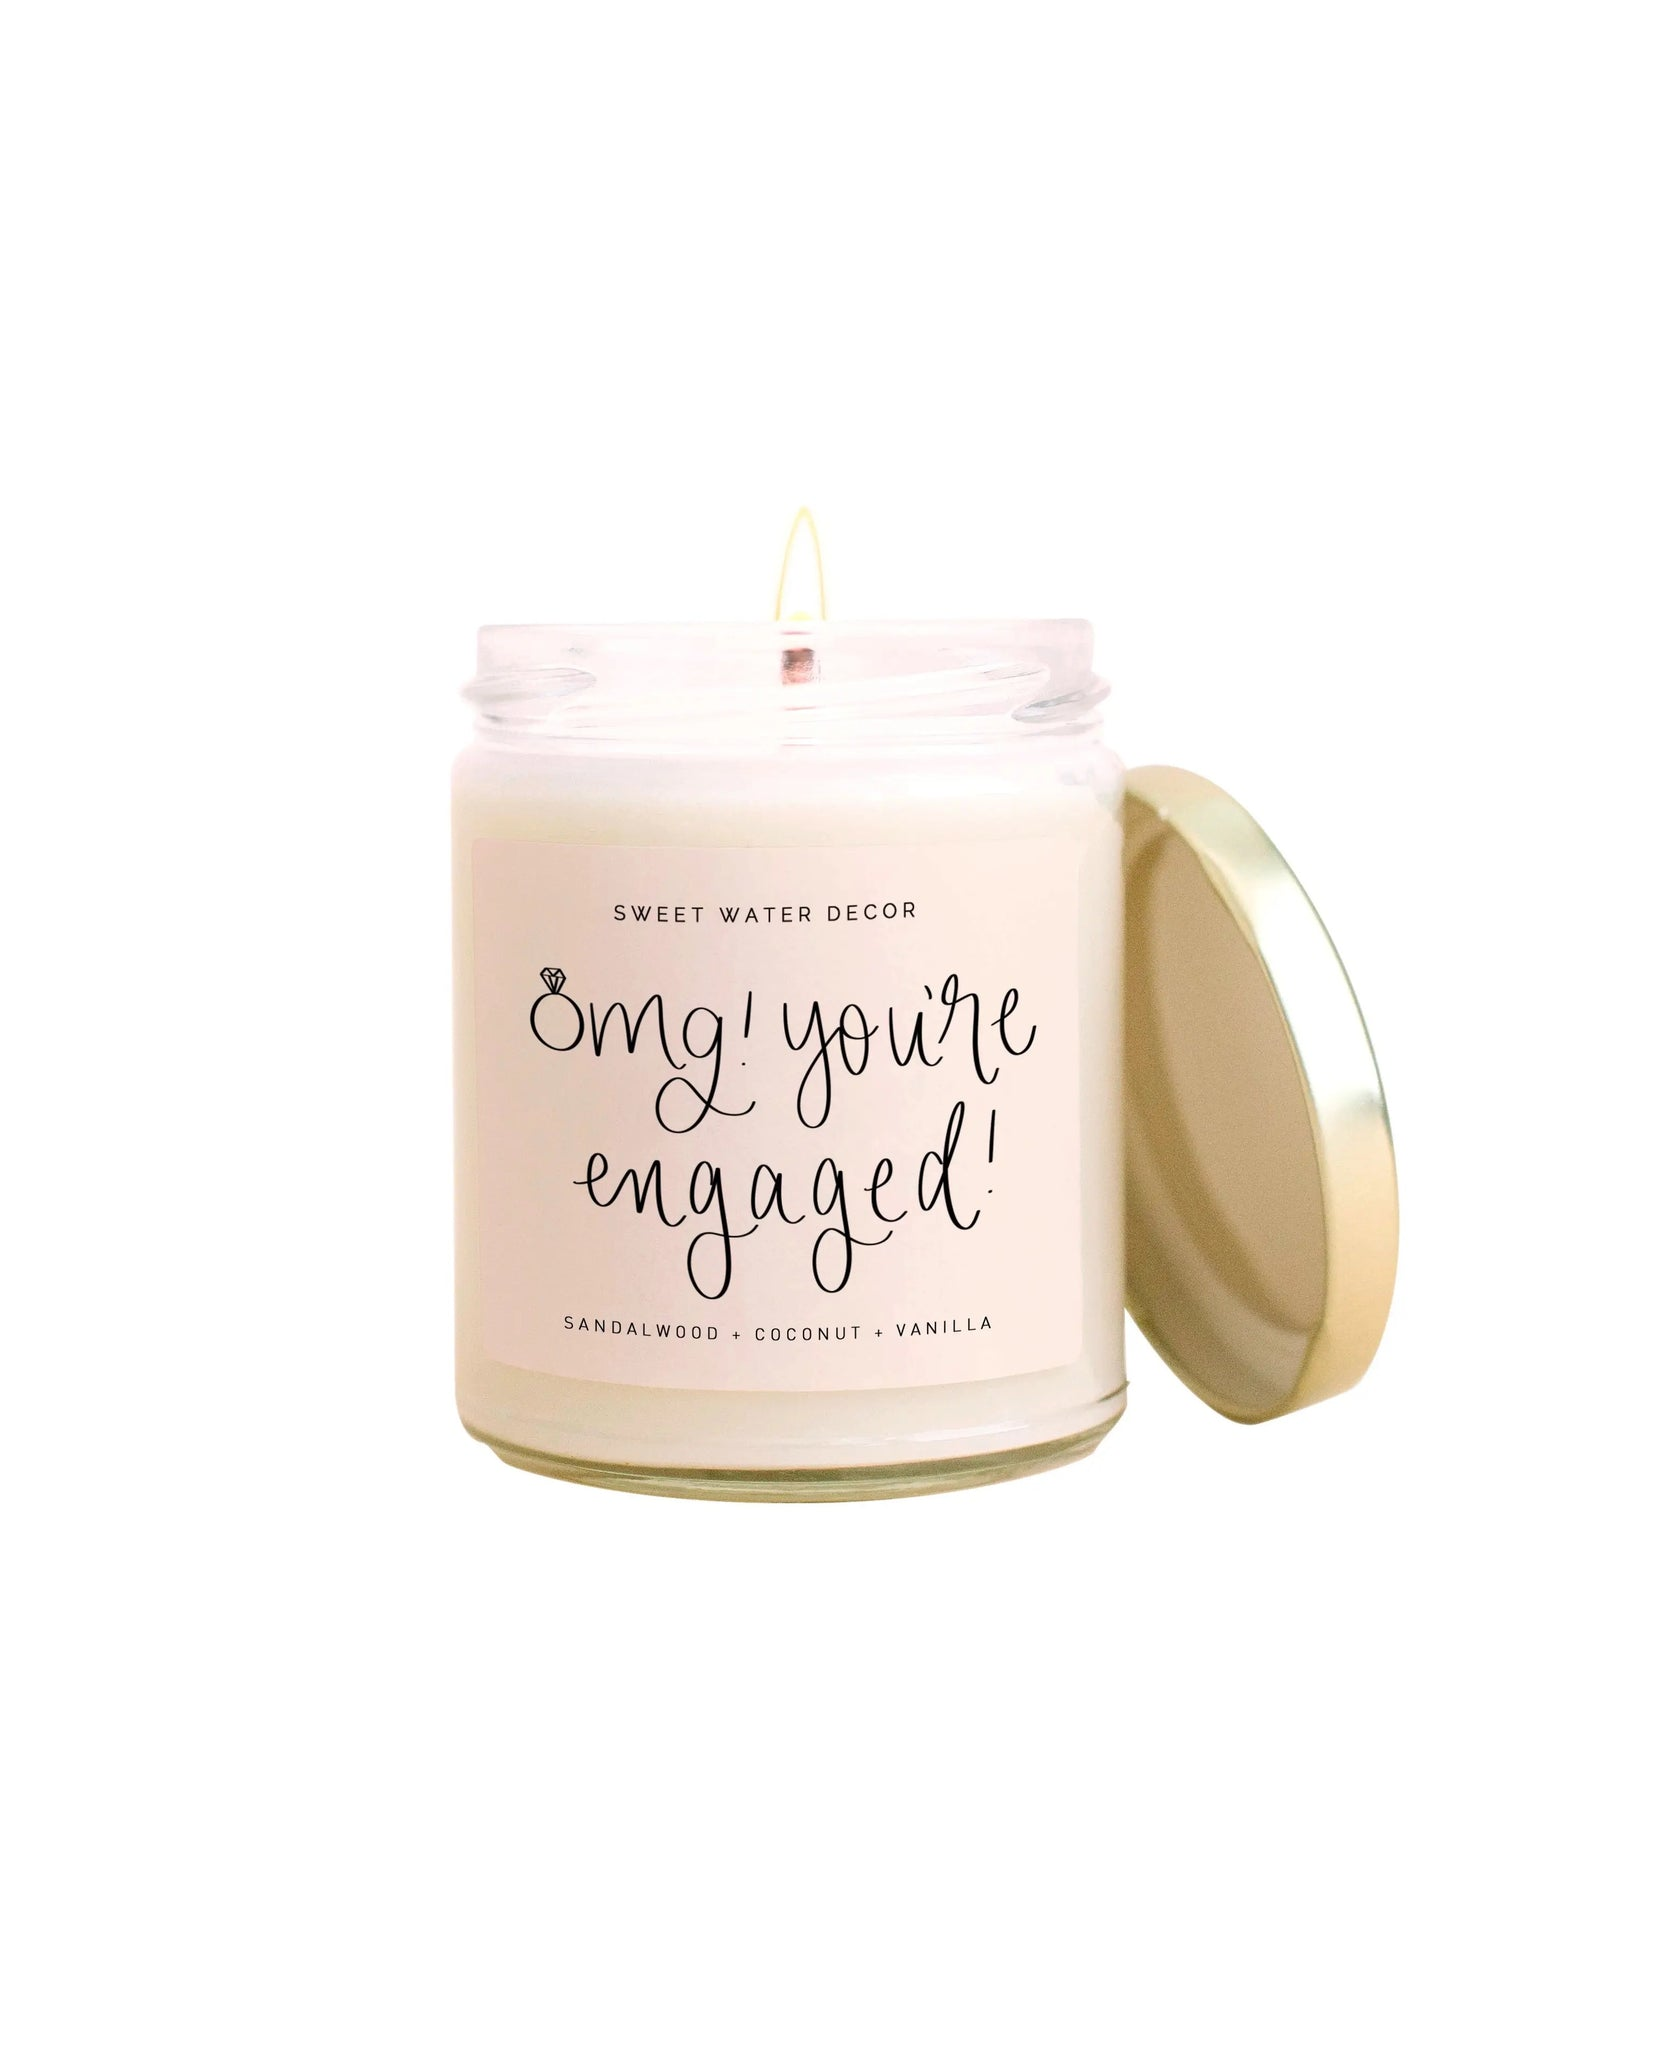 Omg You're Engaged Candle